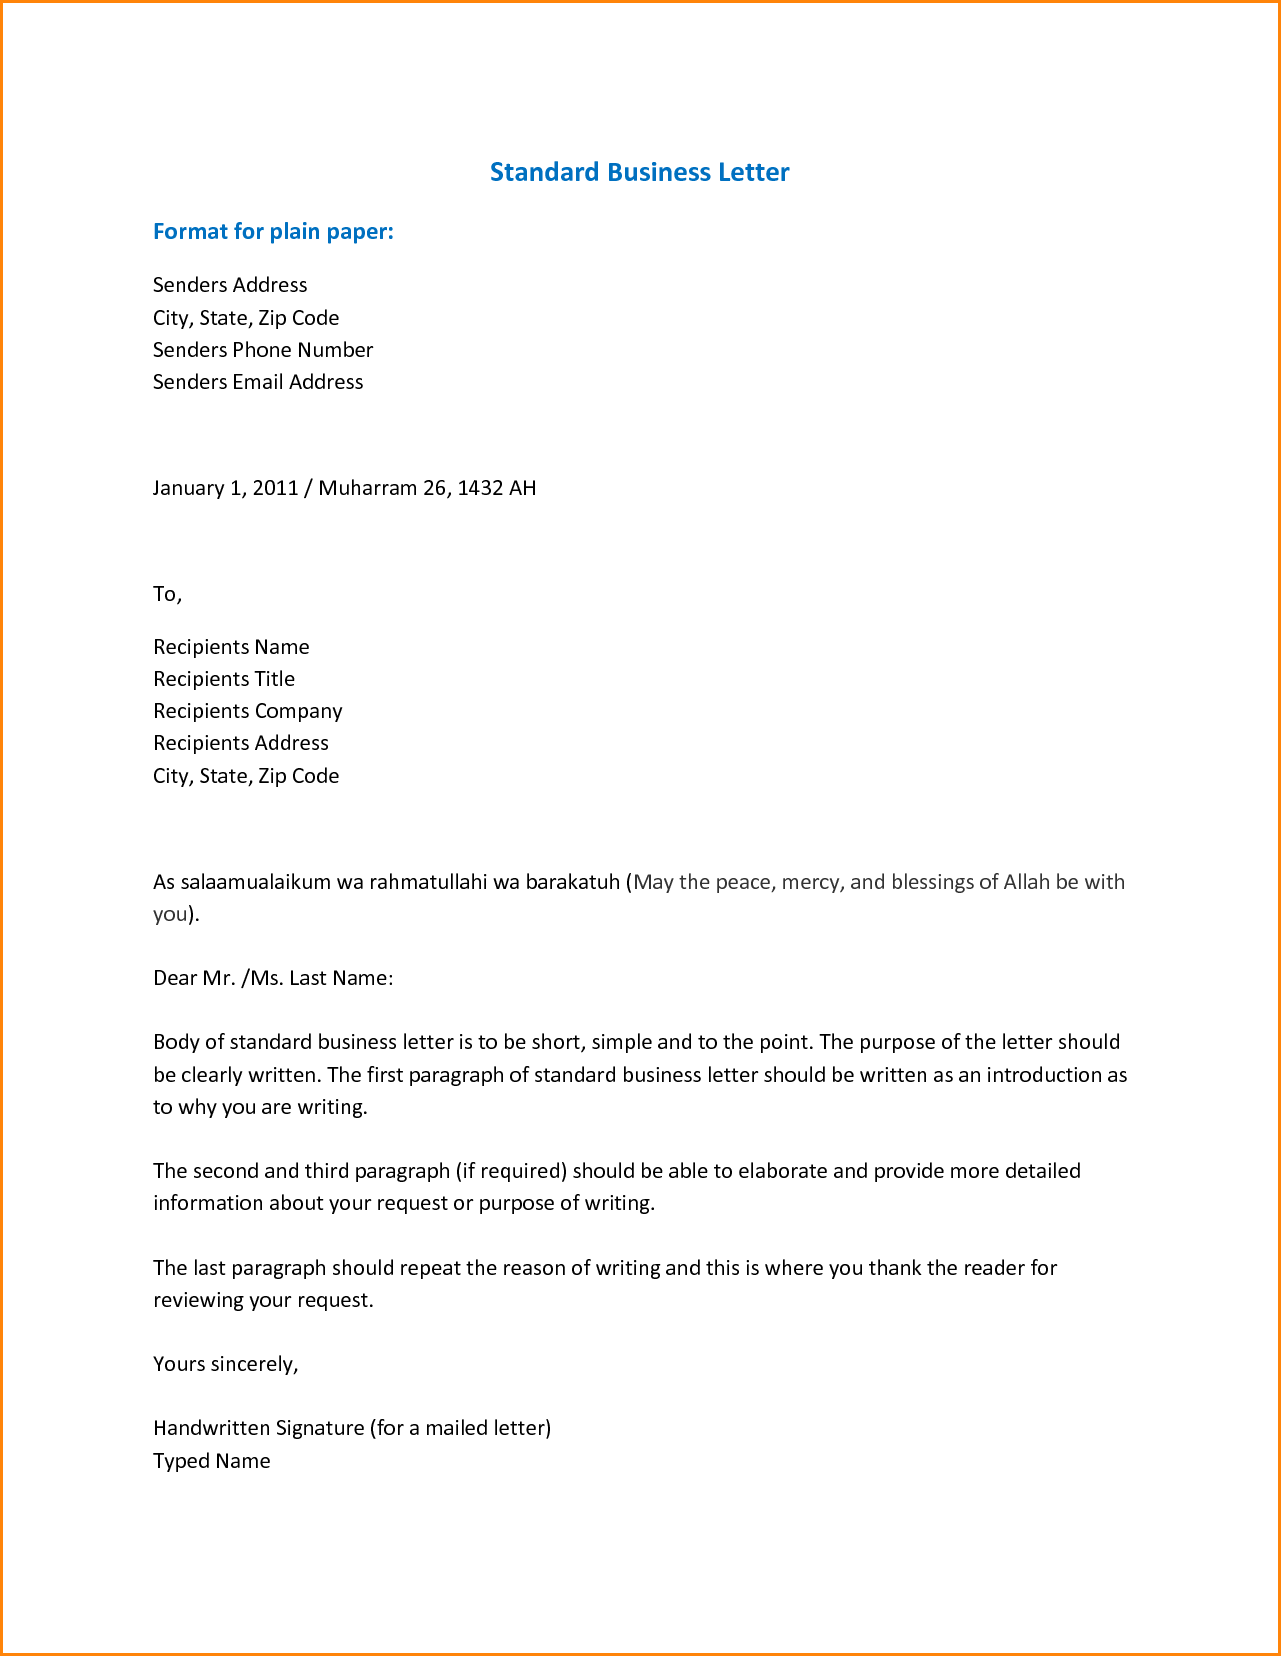 Formal business email format letter spacing guidelines sample formal business email format letter spacing guidelines sample example samples word pdf spiritdancerdesigns Gallery